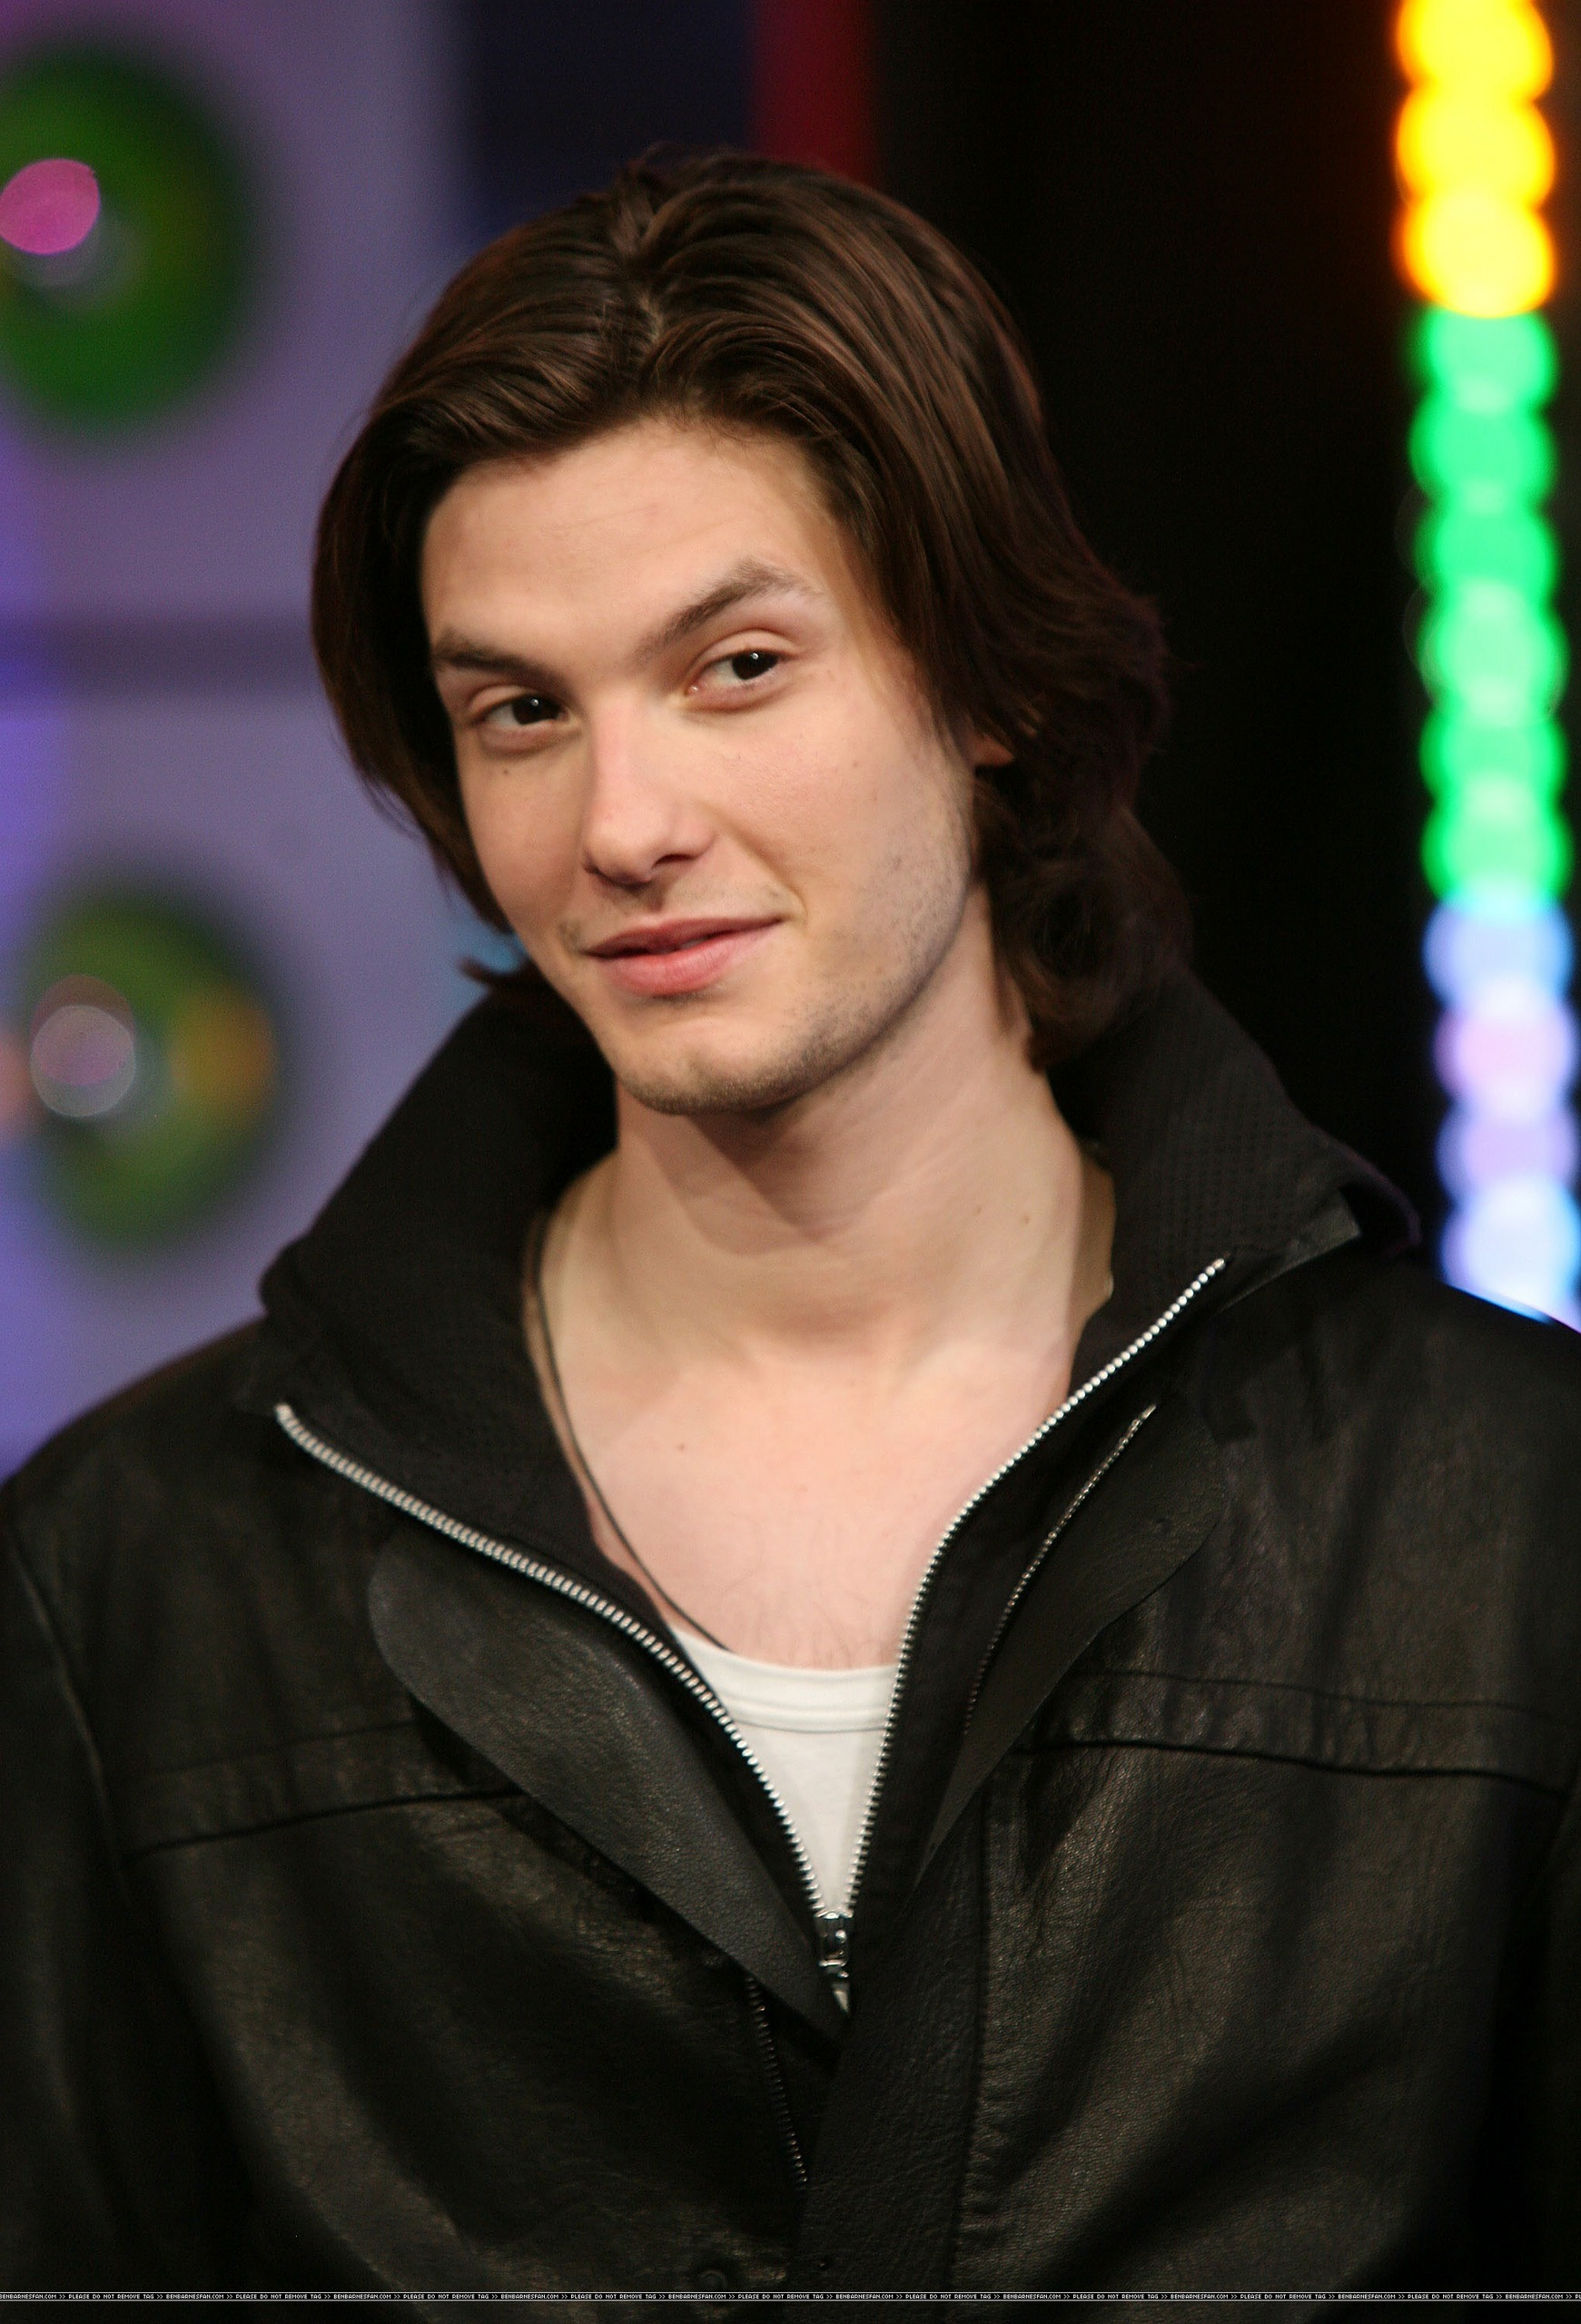 Бен Барнс - Ben Barnes фото №477296: http://www.theplace.ru/photos/photo.php?id=477296